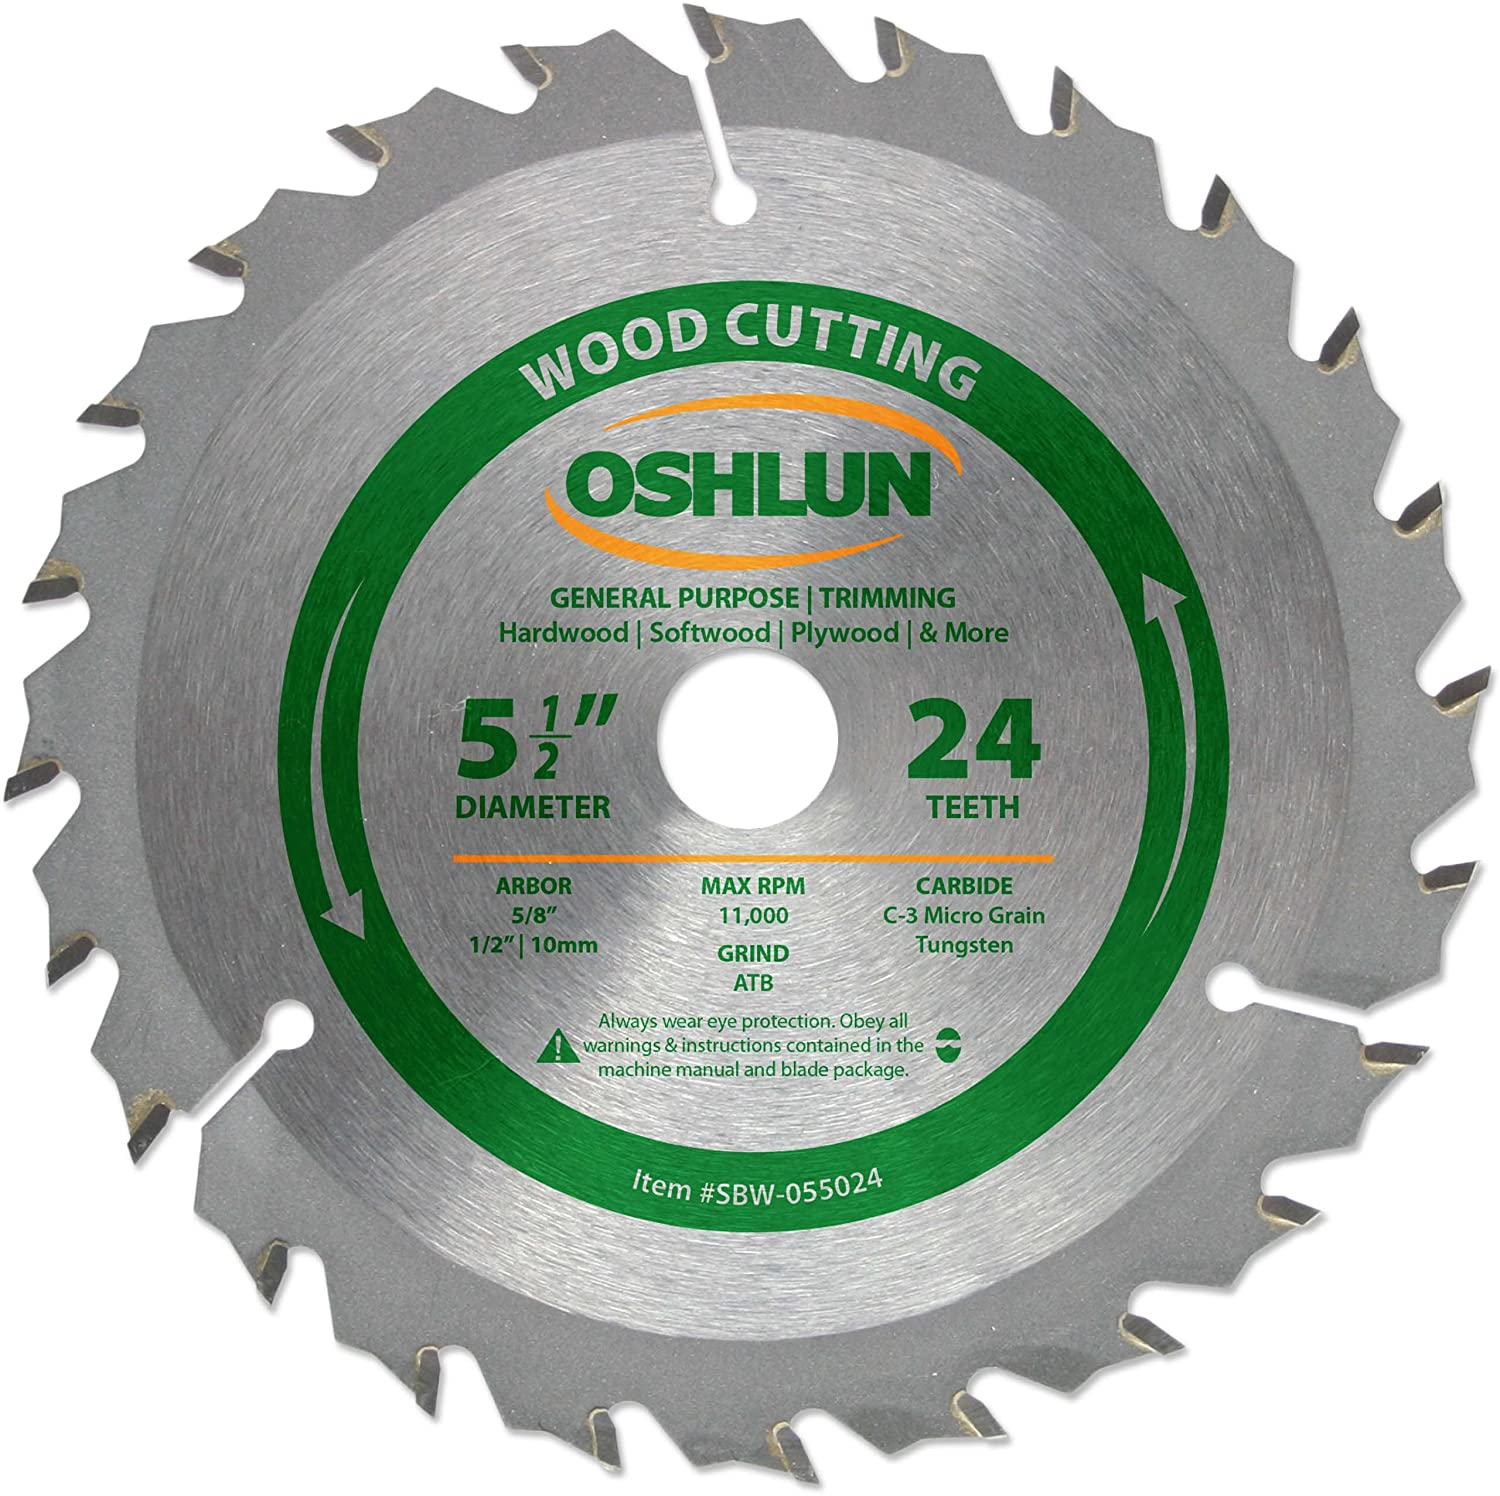 Oshlun sbw 055024 5 12 inch 24 tooth atb general purpose and oshlun sbw 055024 5 12 inch 24 tooth atb general purpose and trimming saw blade with 58 inch arbor 12 inch and 10mm bushings circular saw blades keyboard keysfo Images